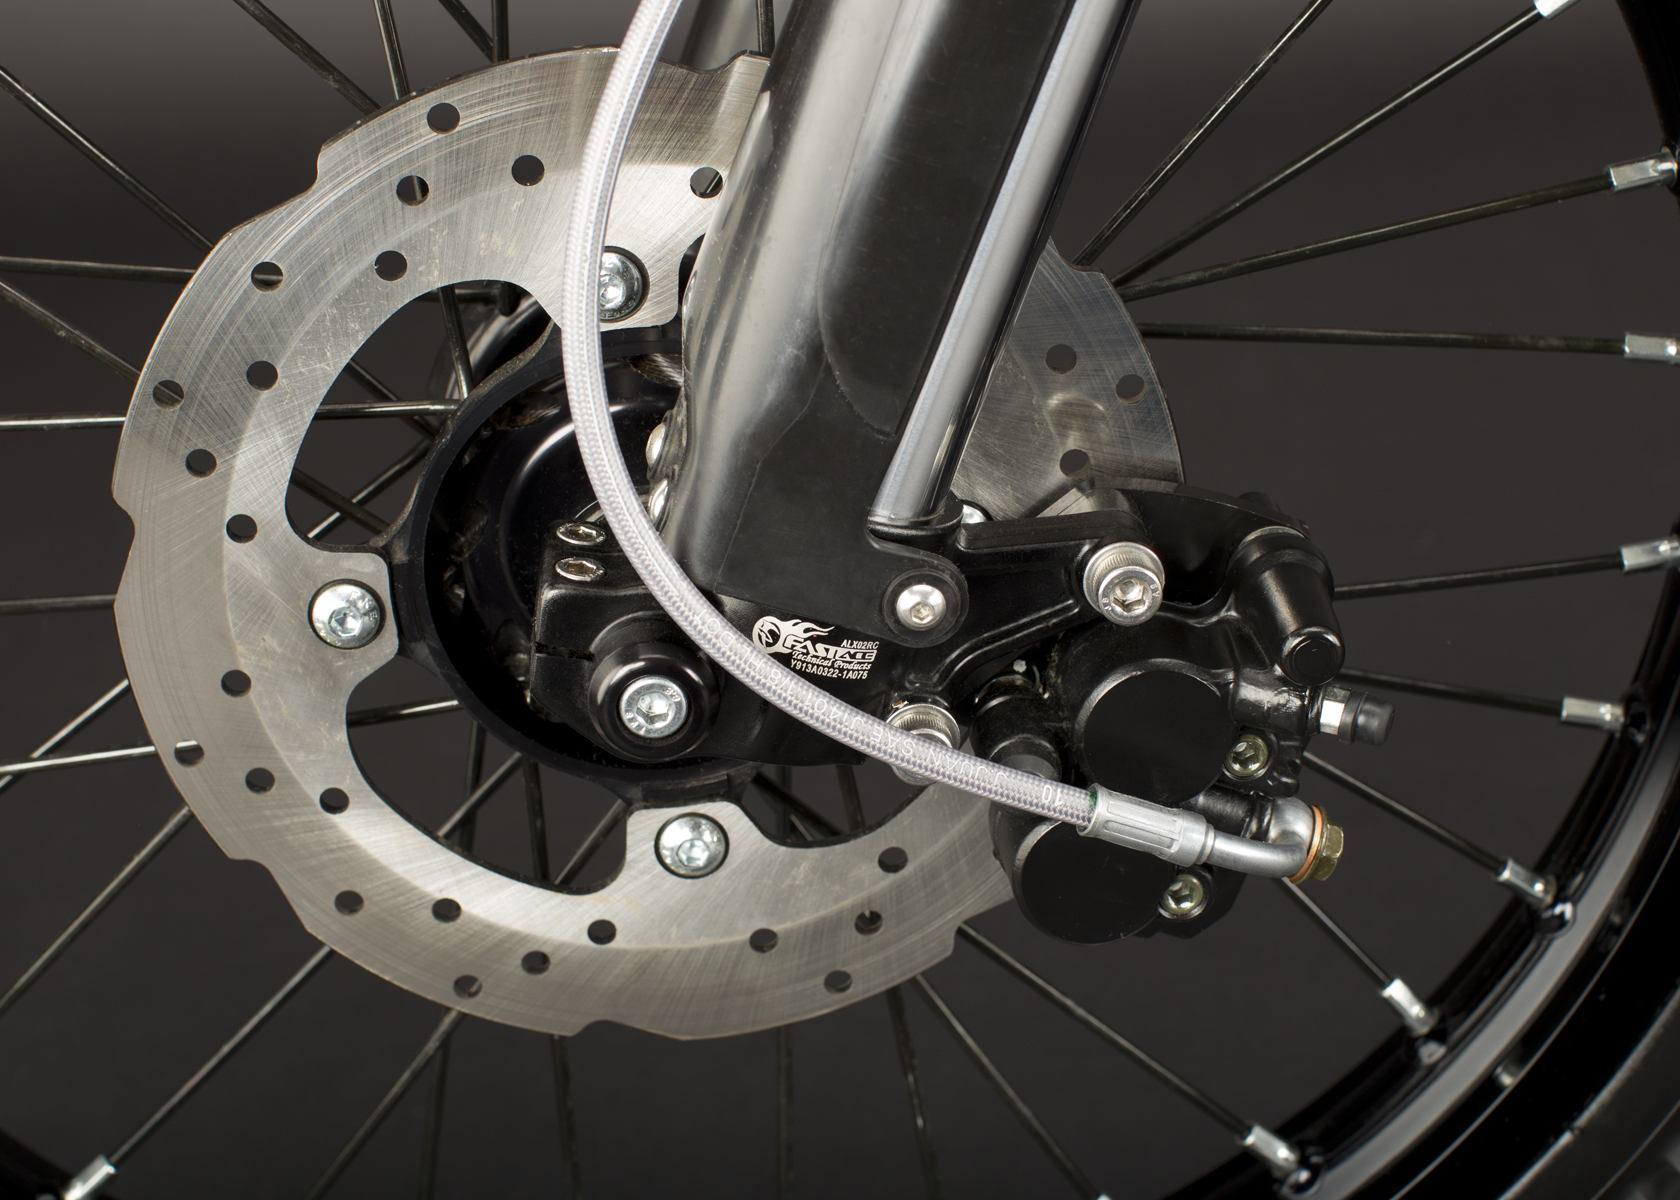 2011 Zero MX Electric Motorcycle: Front Brake